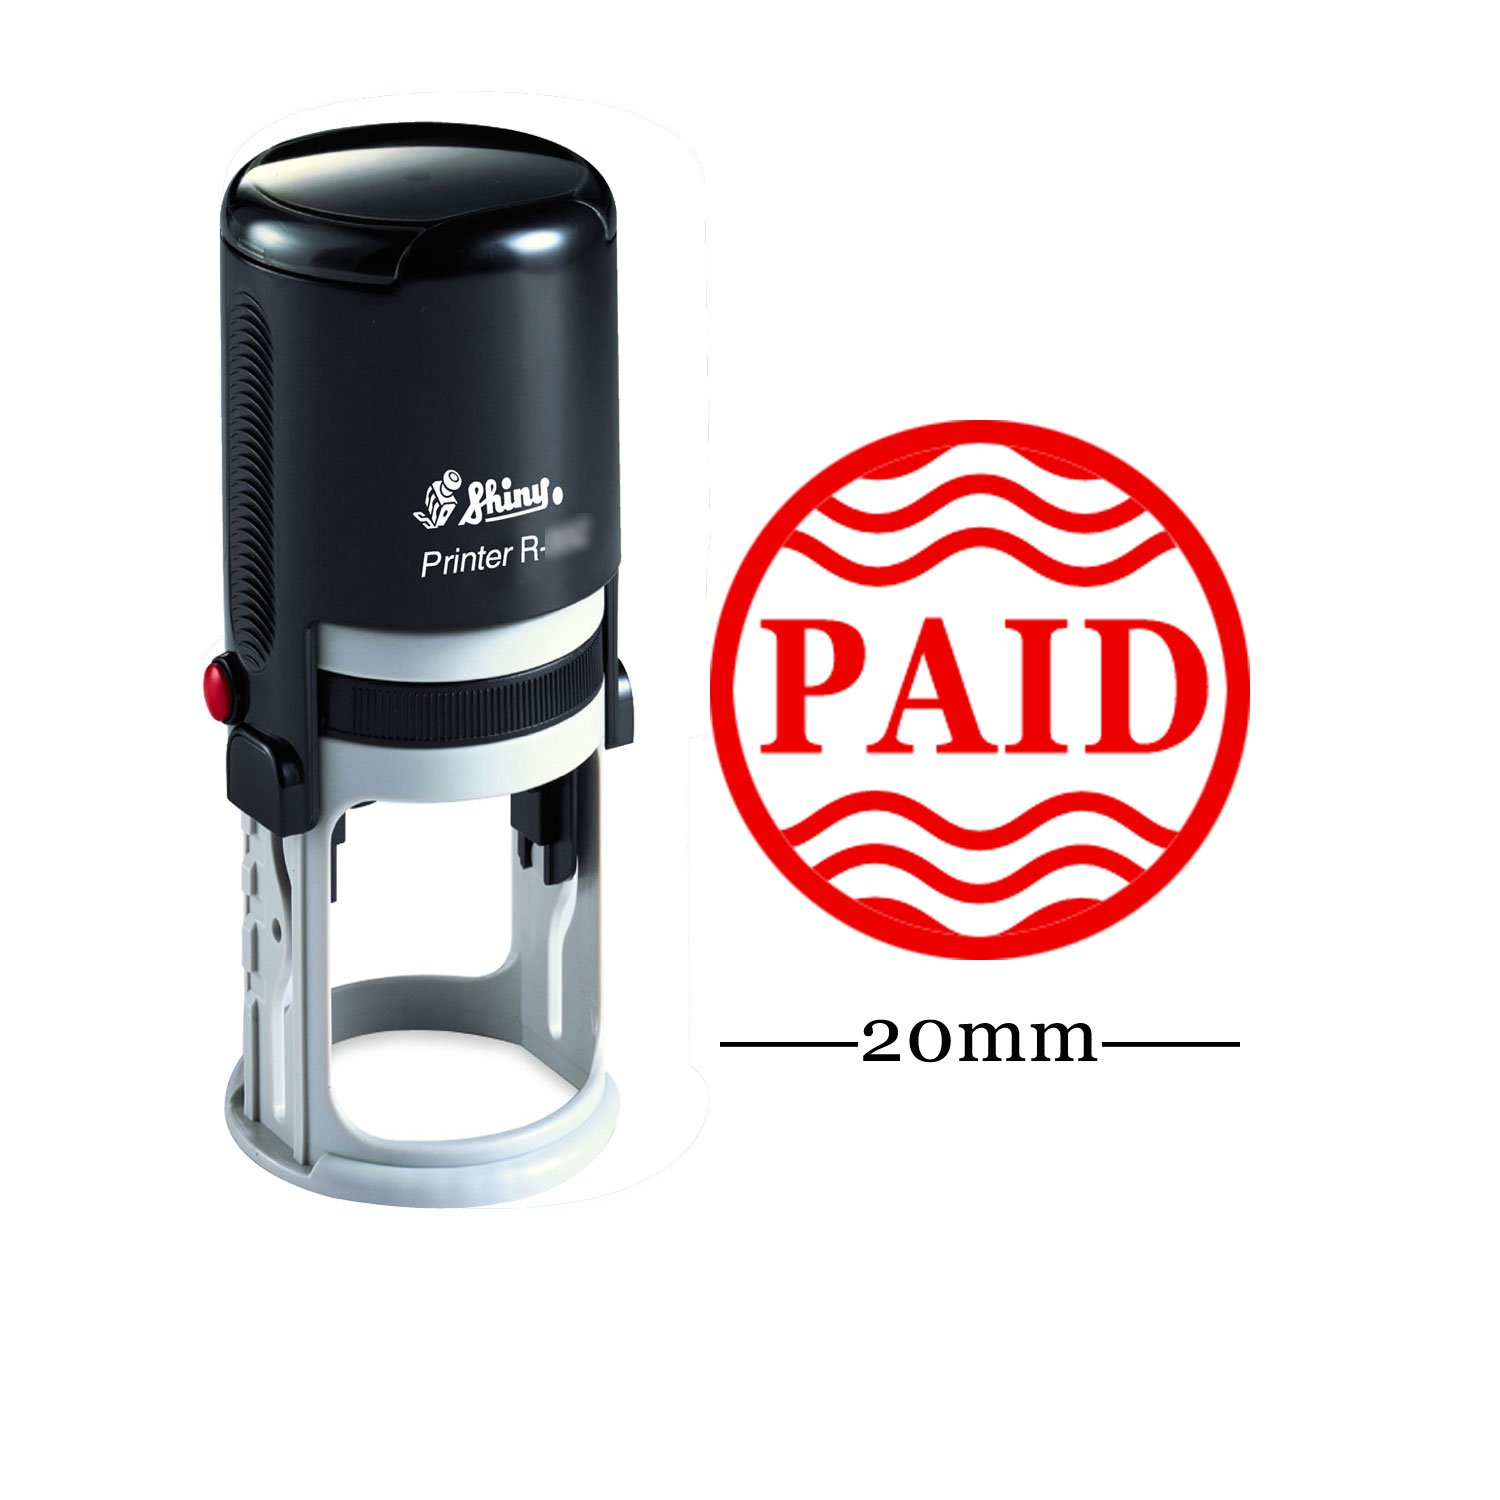 PAID Round Self Inking Office Stationary Stamp Personalized Custom Shiny 20mm Rubber Stamp